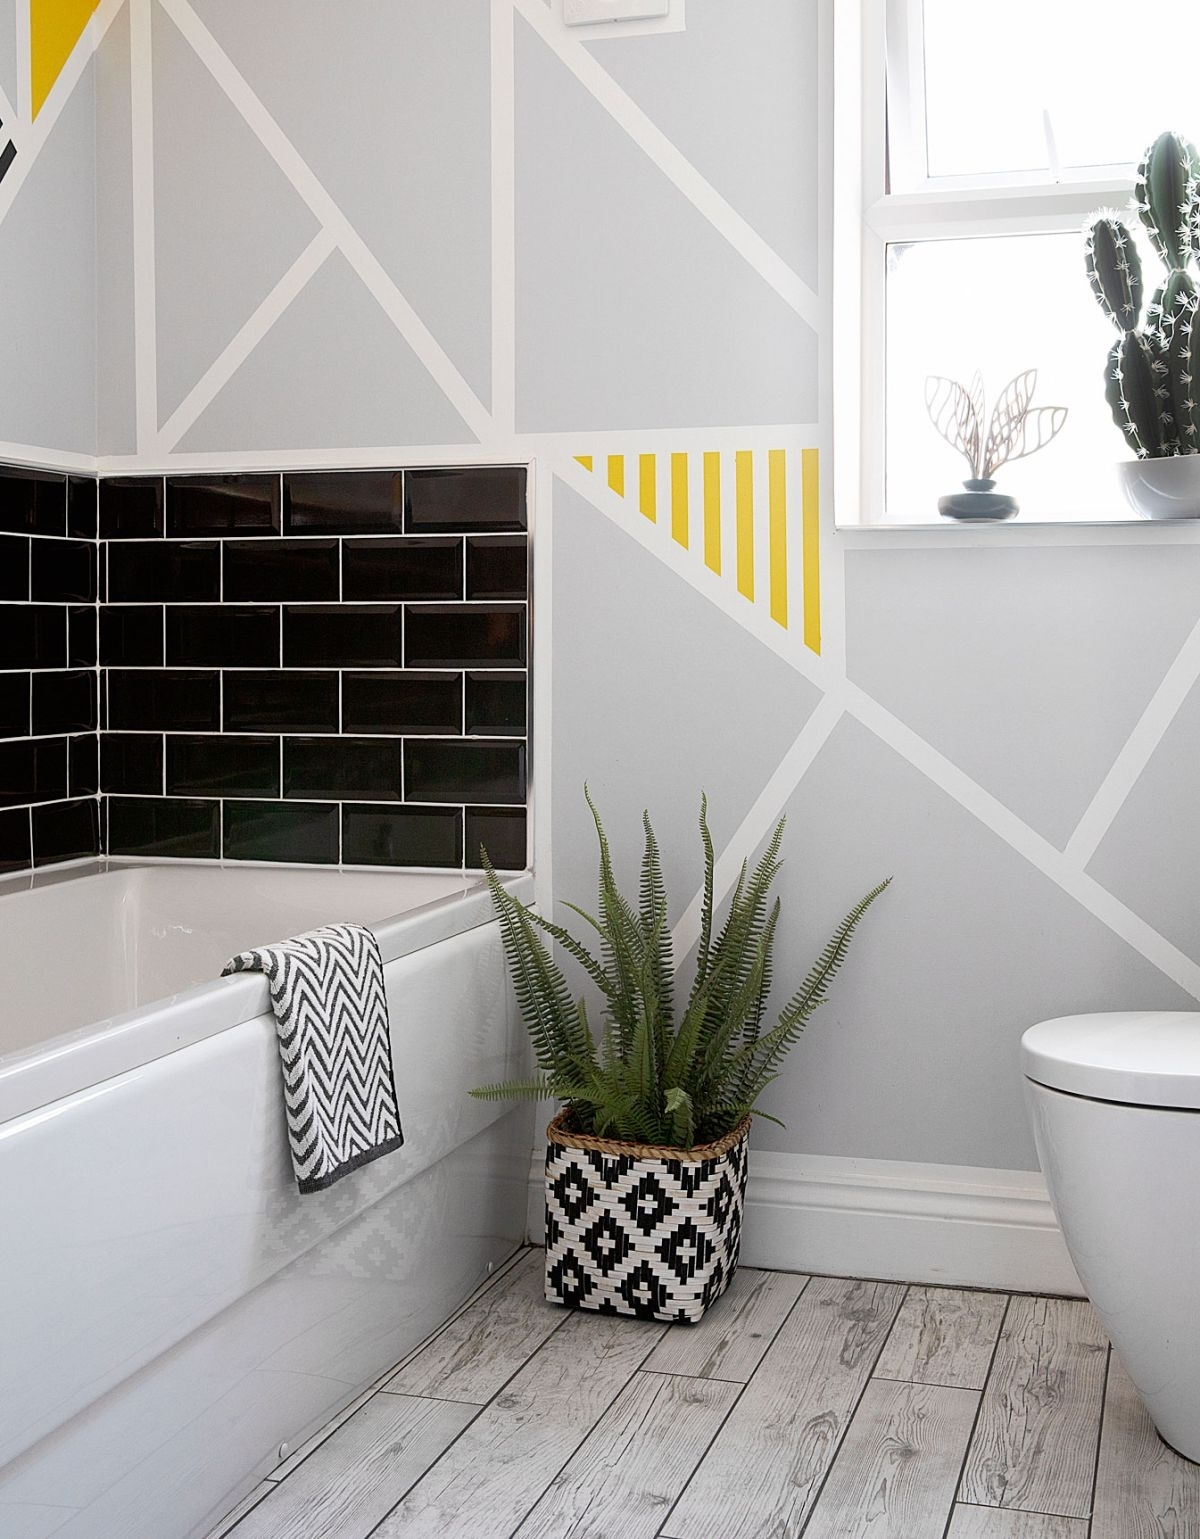 Wall Painting Ideas: 9 Ways You Can Use Paint To Brighten Up 10+ Frog Tape Bathroom Inspirations